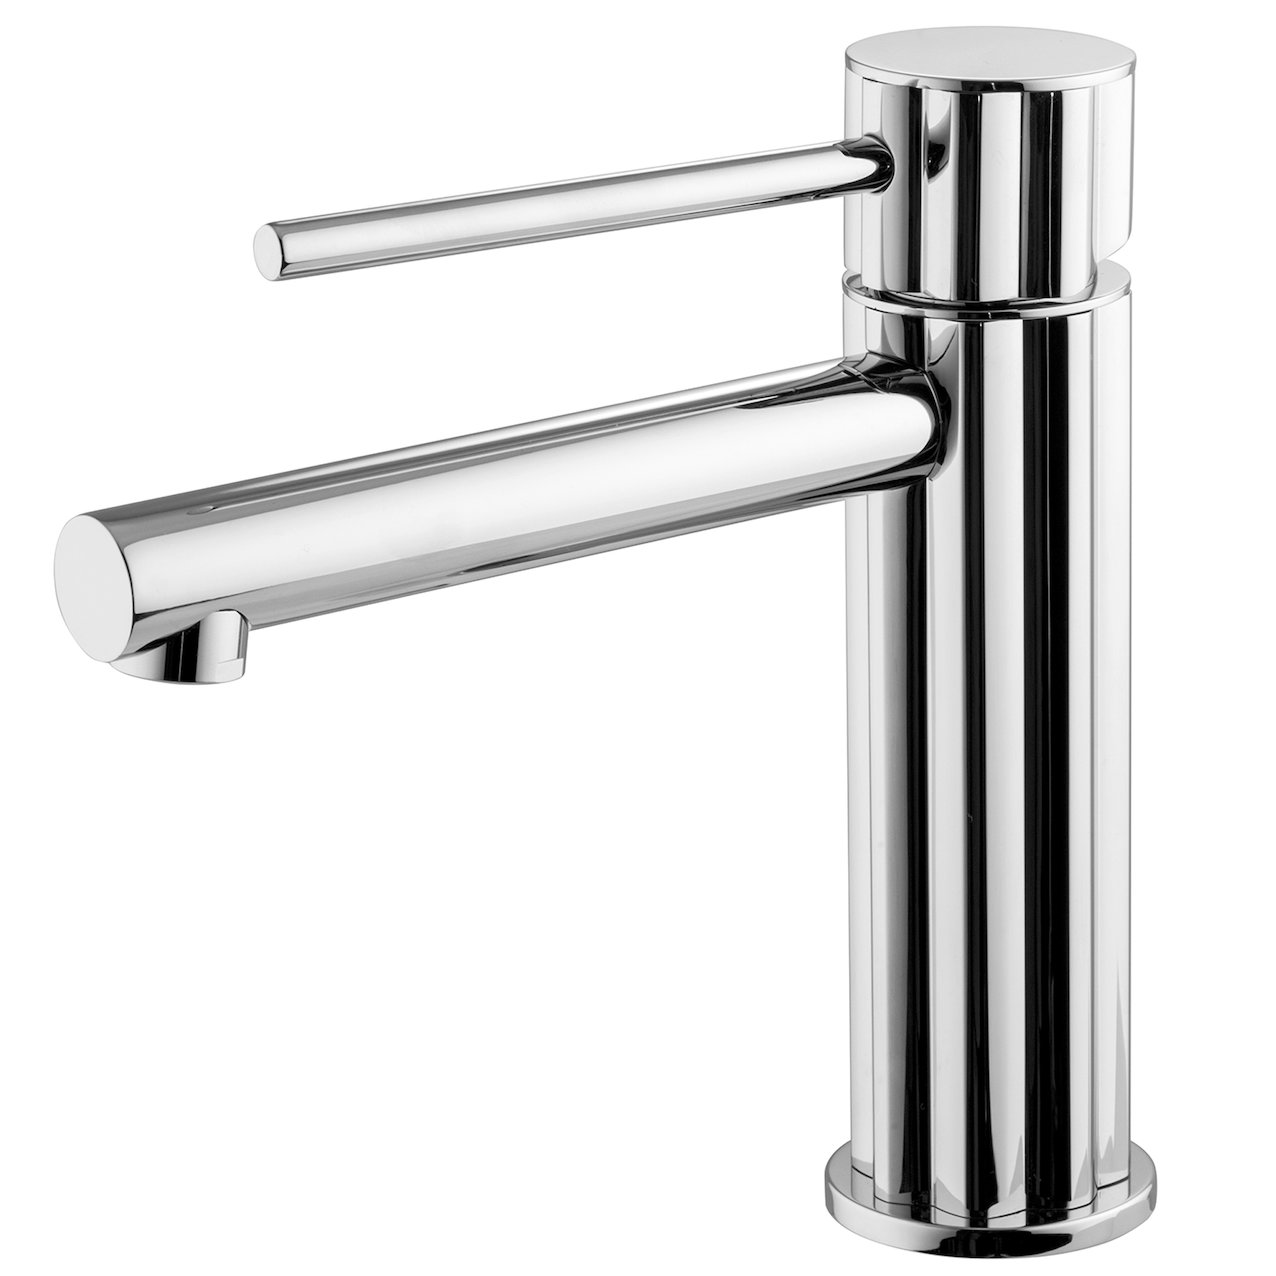 Washbasin Mixer Corinthia